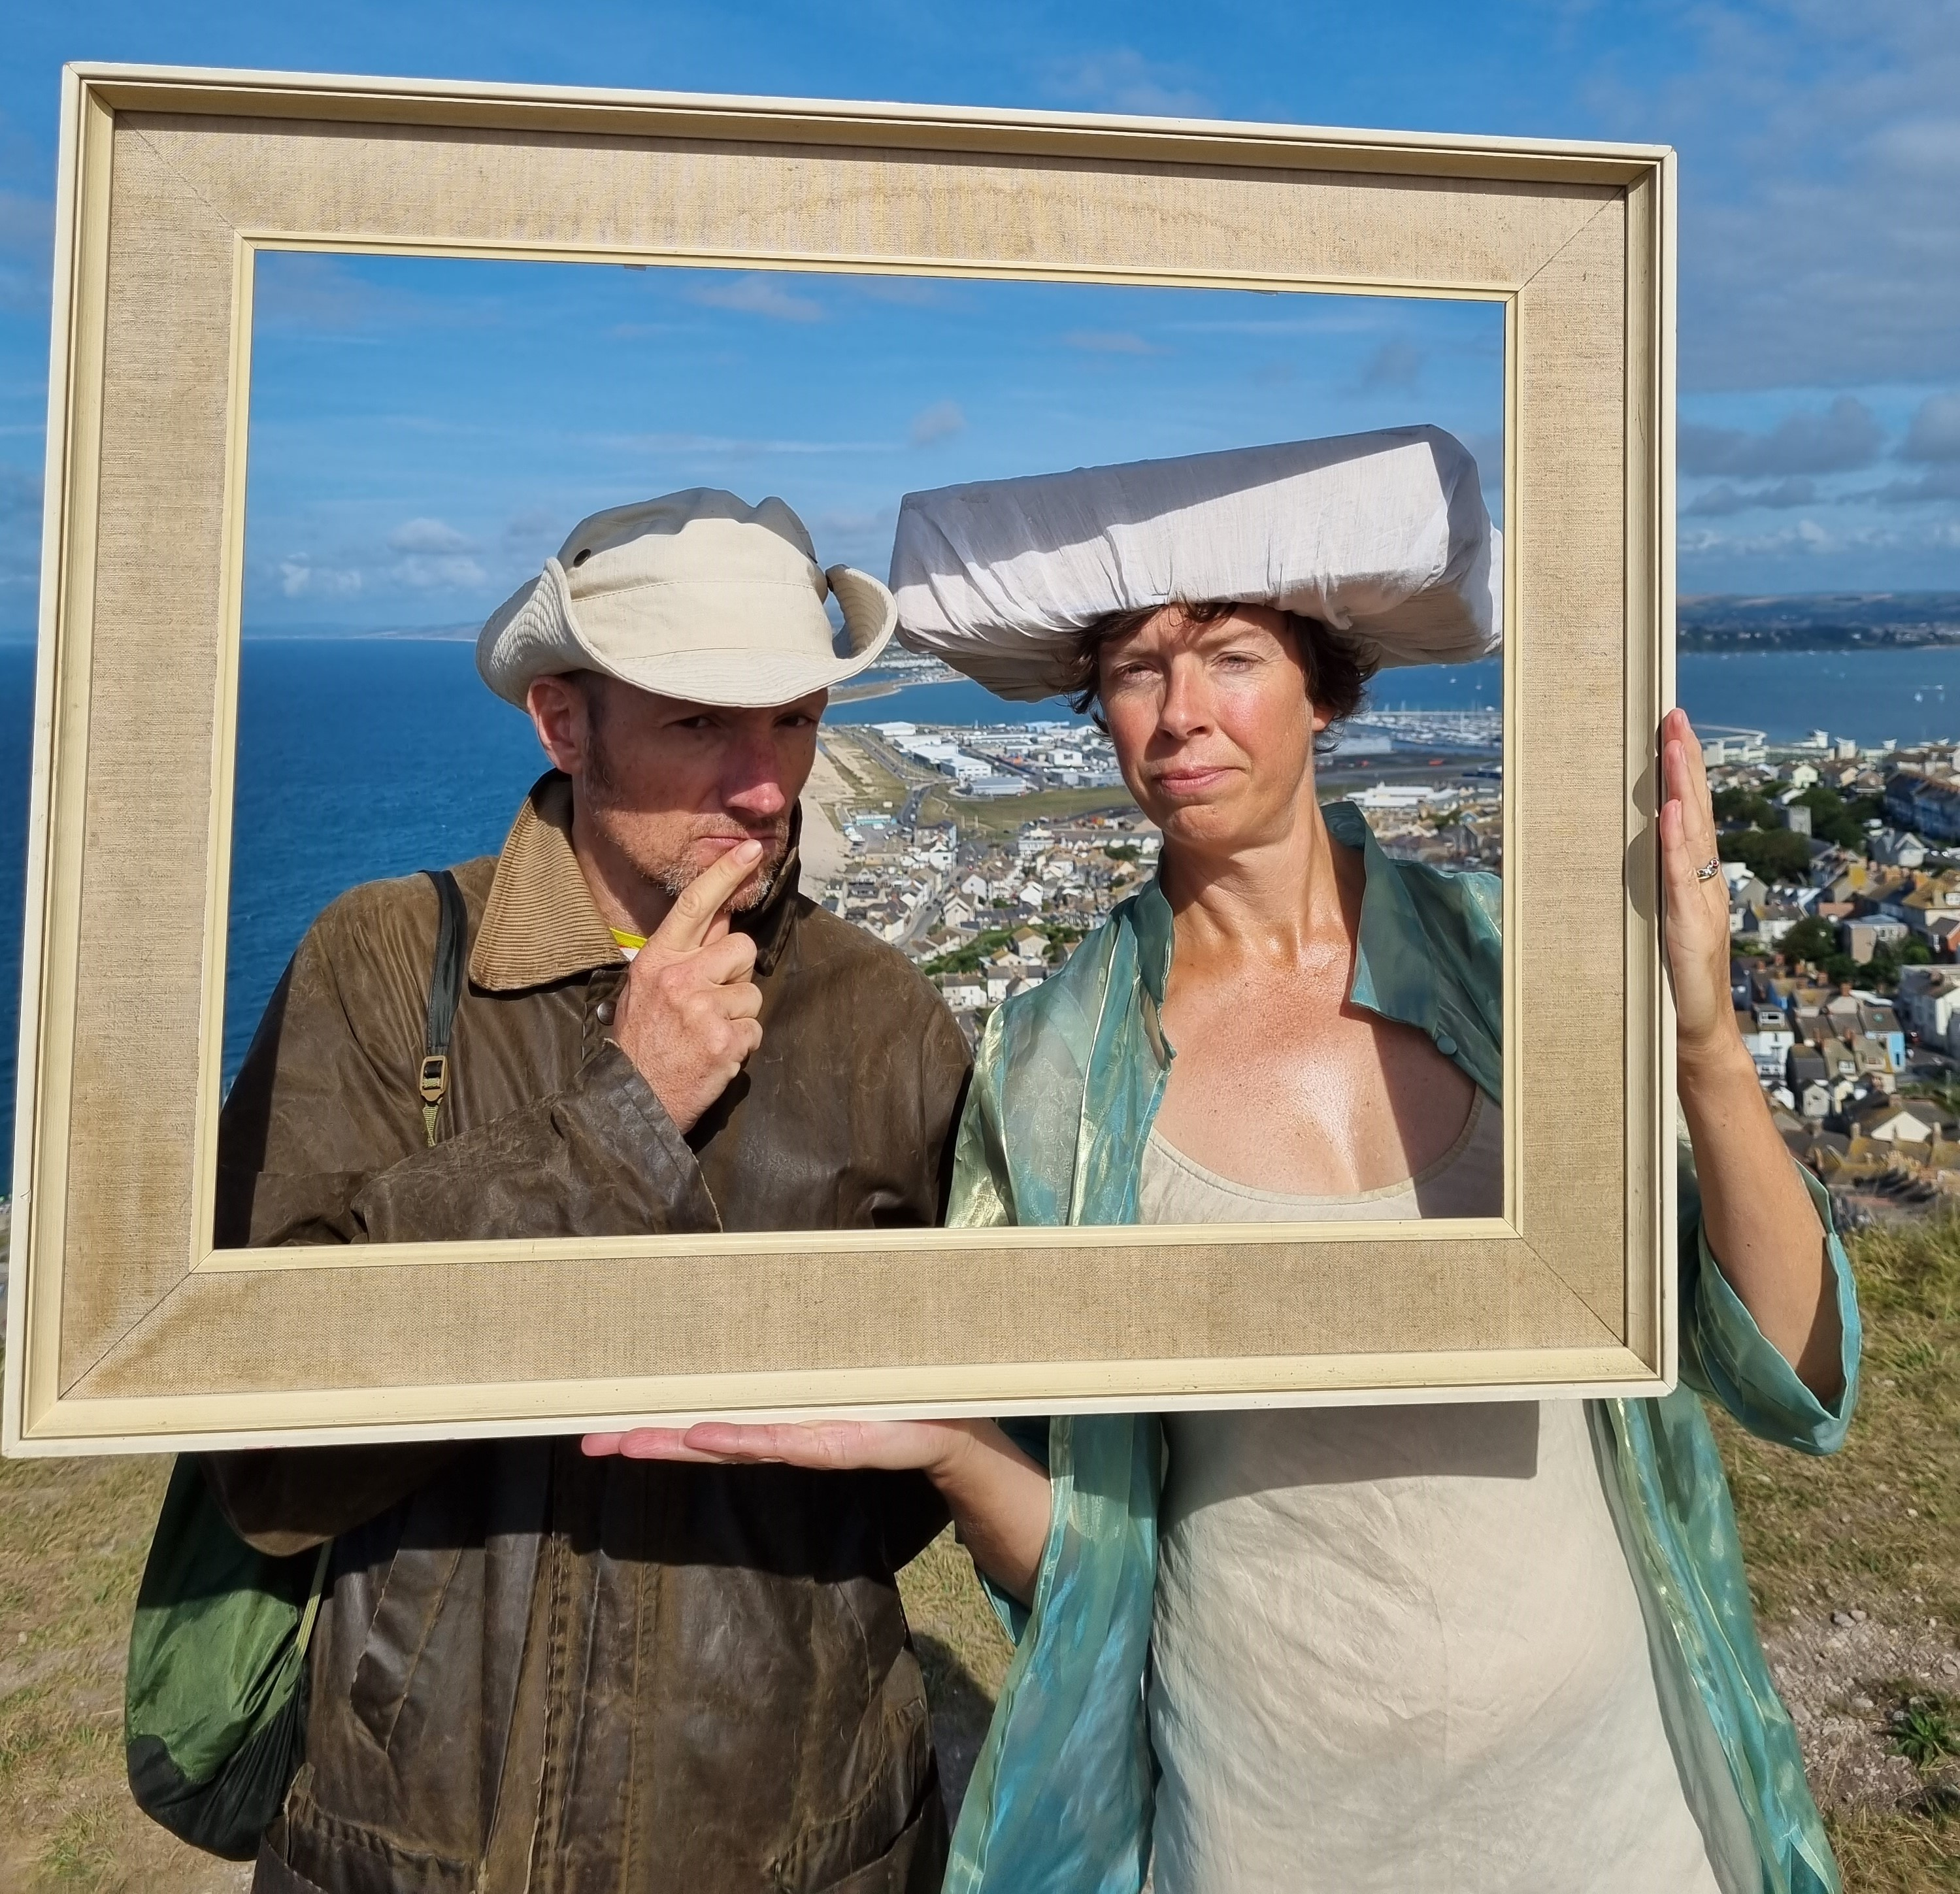 Simon and Jess with a frame and Chesil Beach